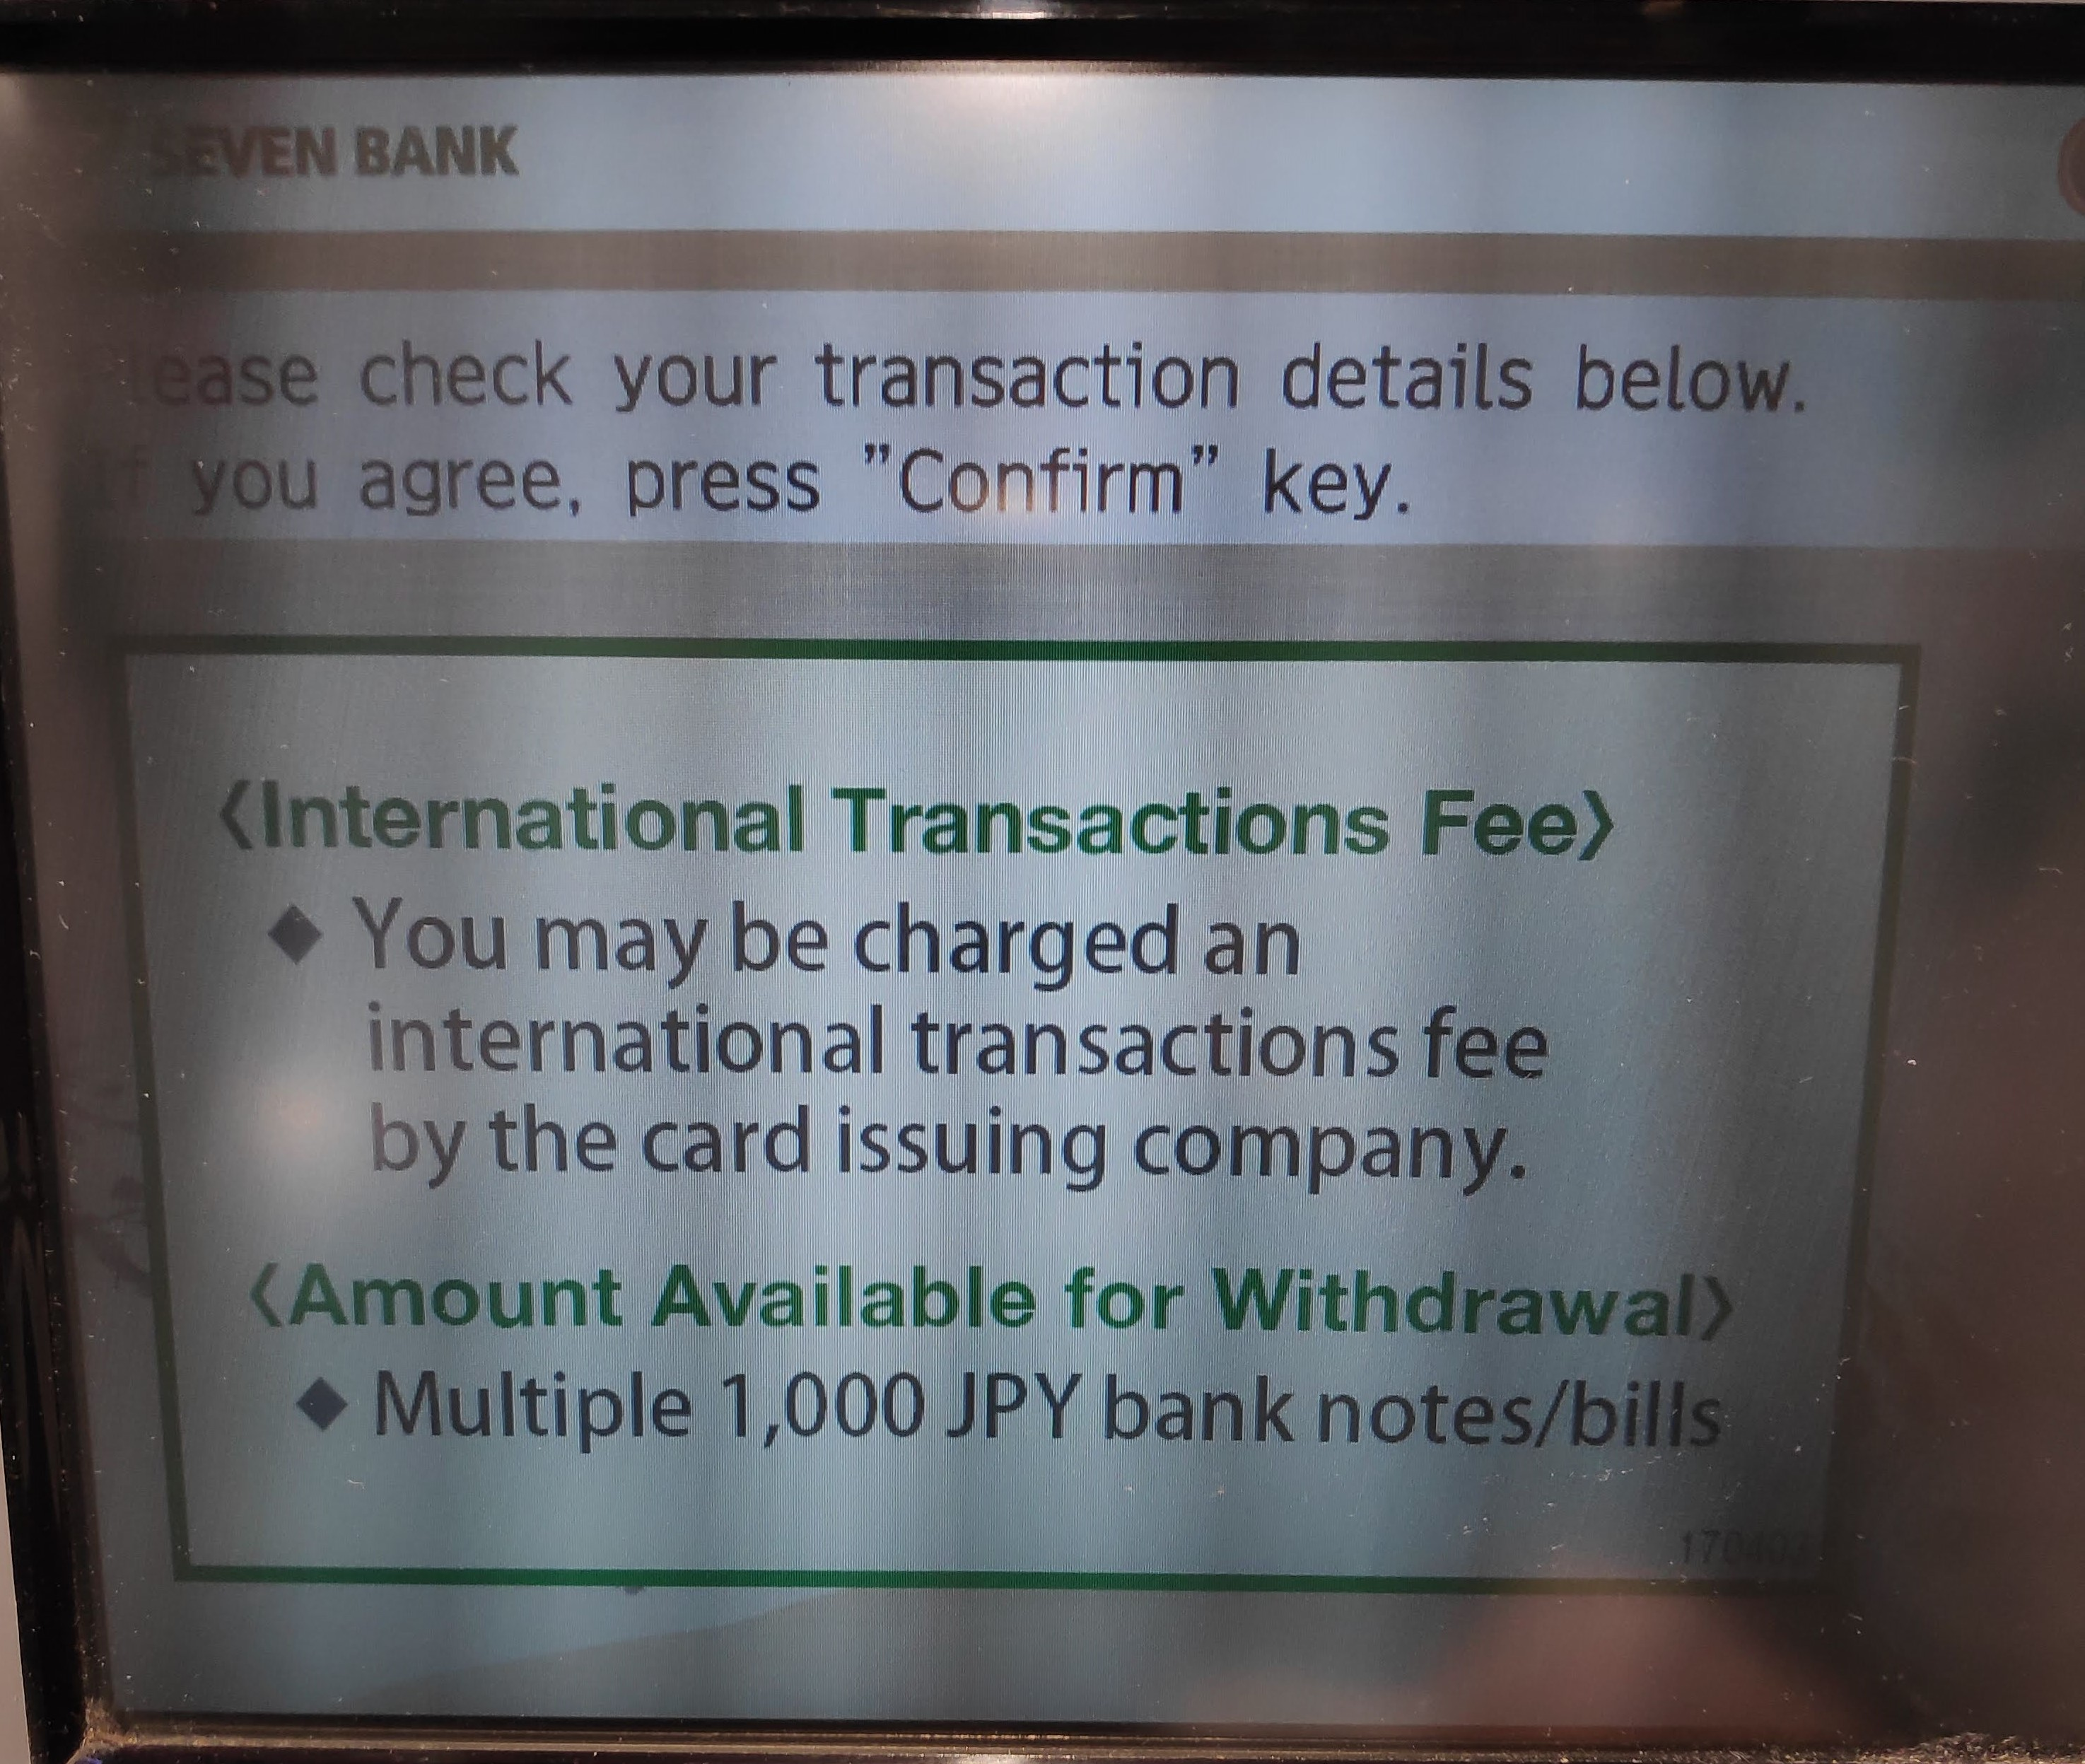 International Transactions Fee You may be charged an international transactions fee by the card issuing company.